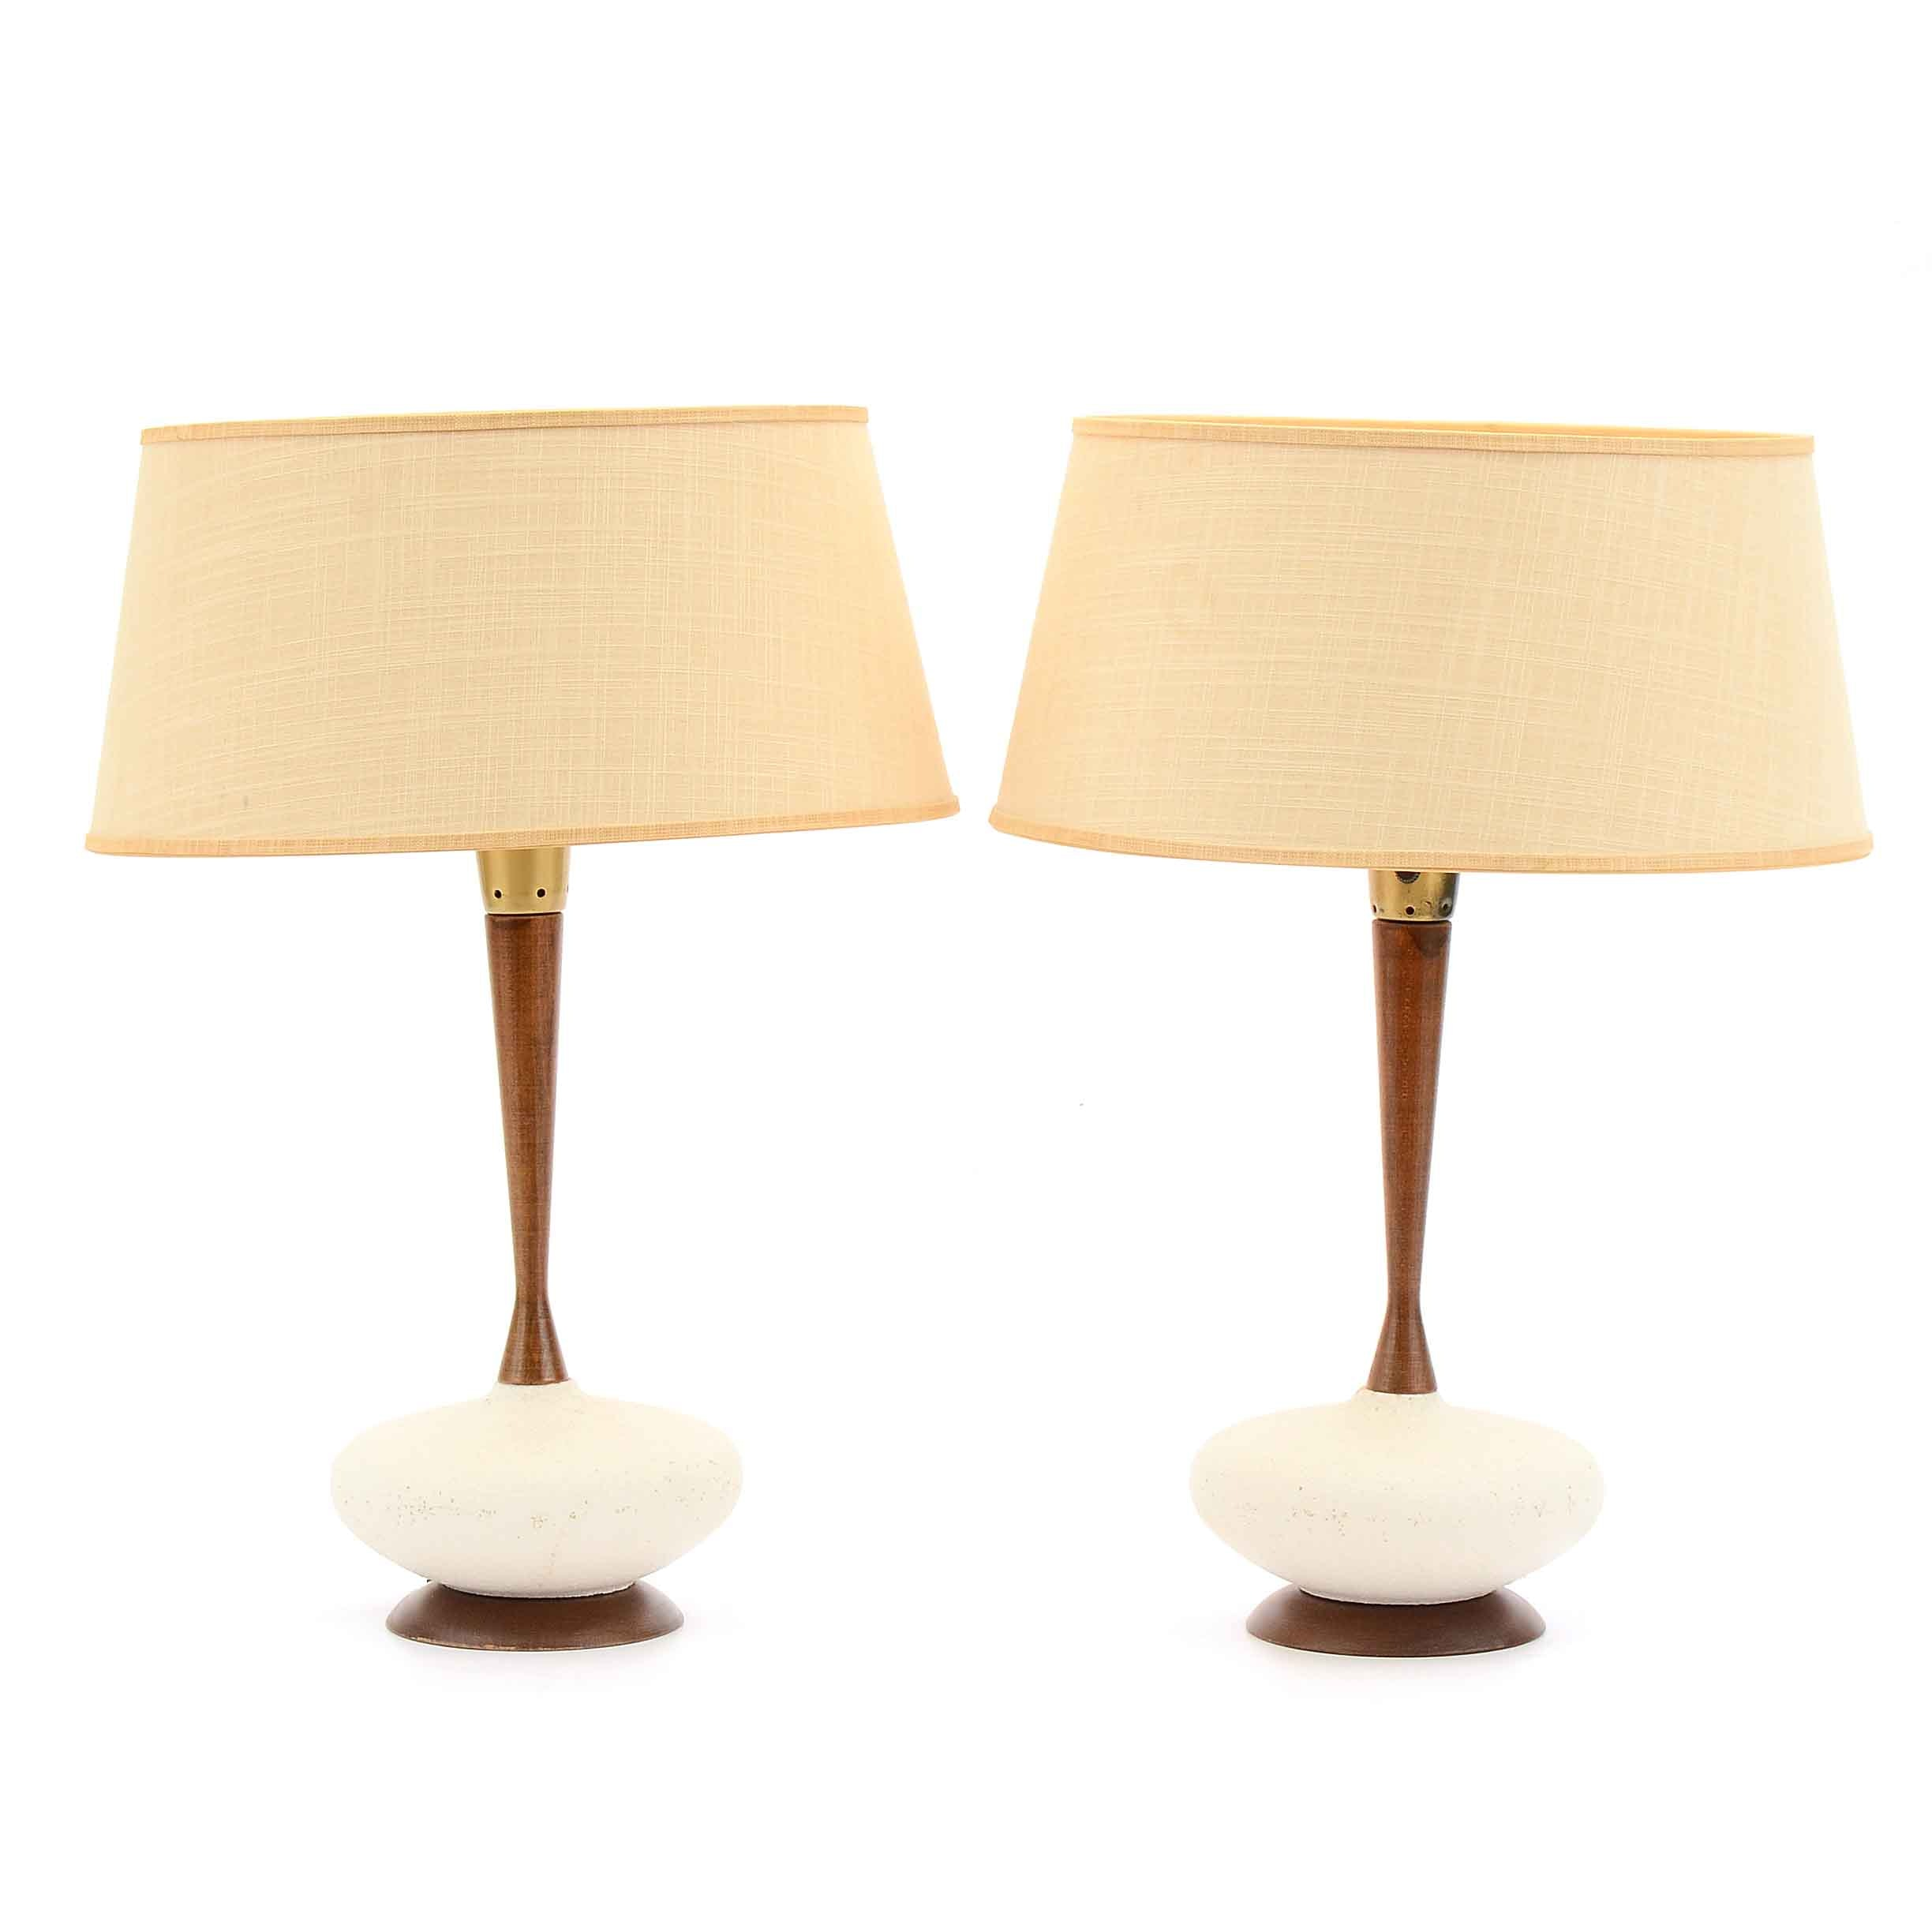 Mid Century Modern Wood and Ceramic Table Lamps